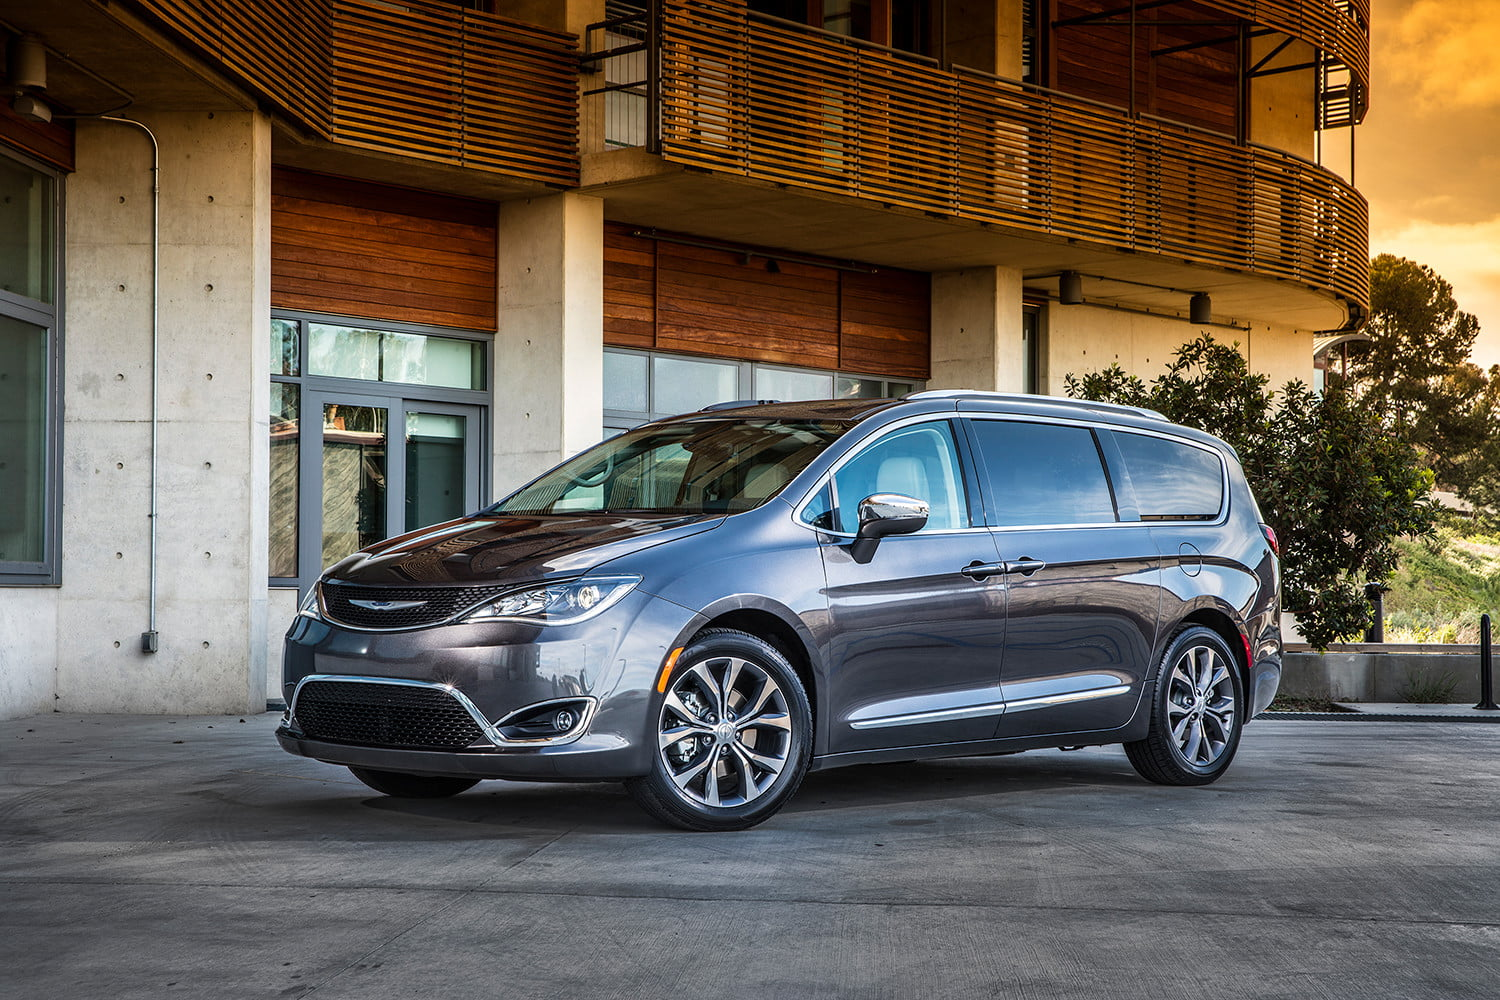 2018 Chrysler Pacifica Prices, Specs, Features, and News